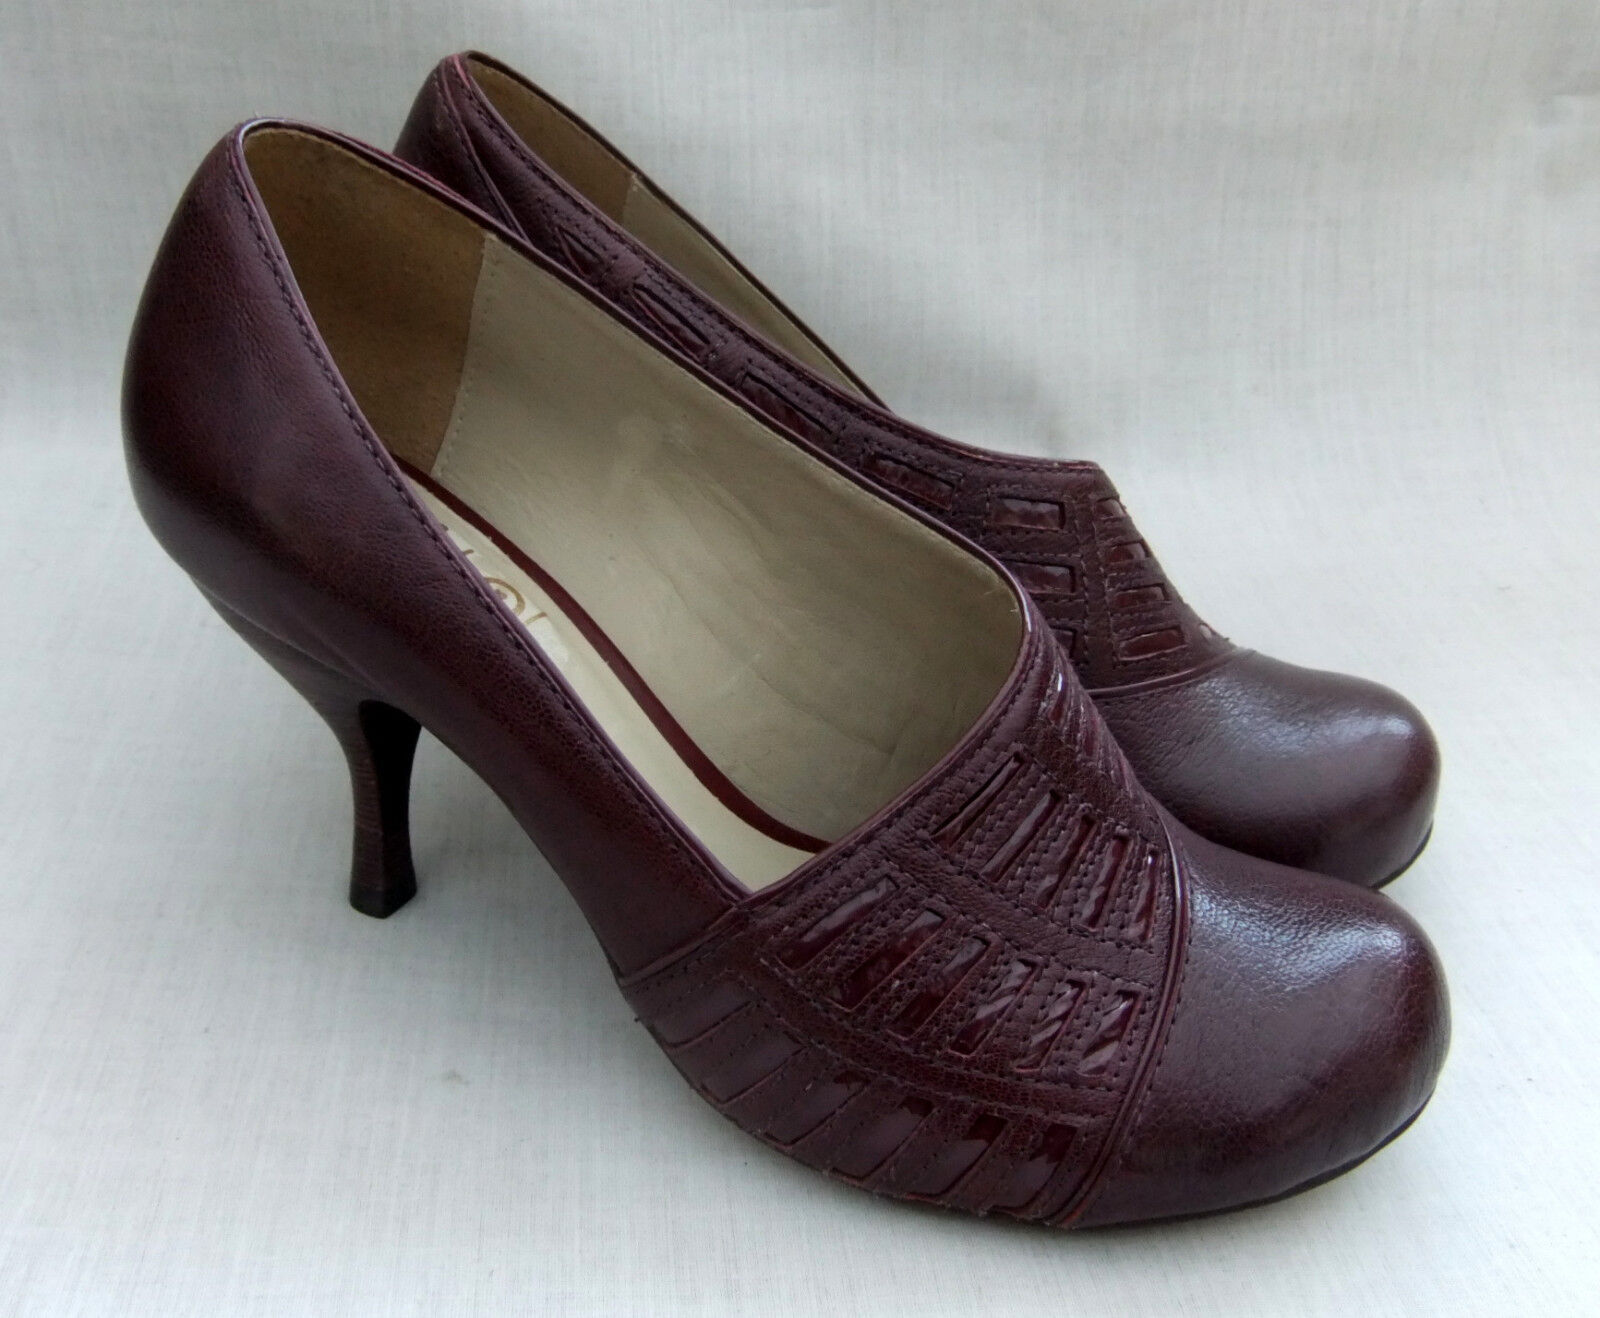 NEW CLARKS HANDCRAFTED ASHA VIEW femmes BORDEAUX LEATHER chaussures